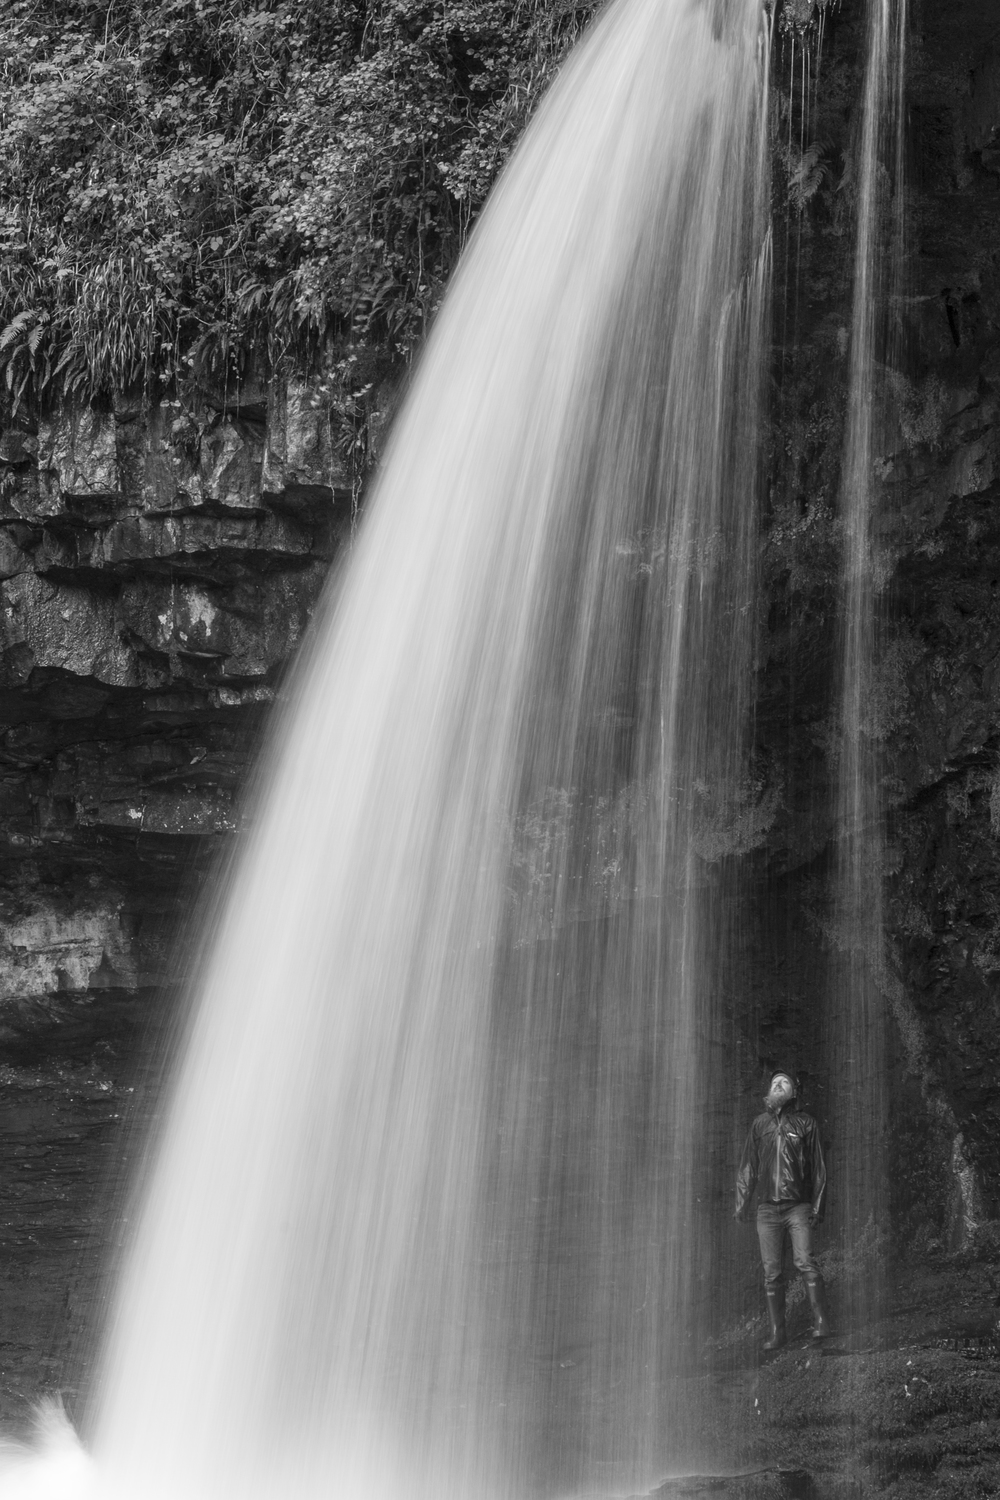 Under waterfall, Ystadfellte, Brecon Beacons, Wales.